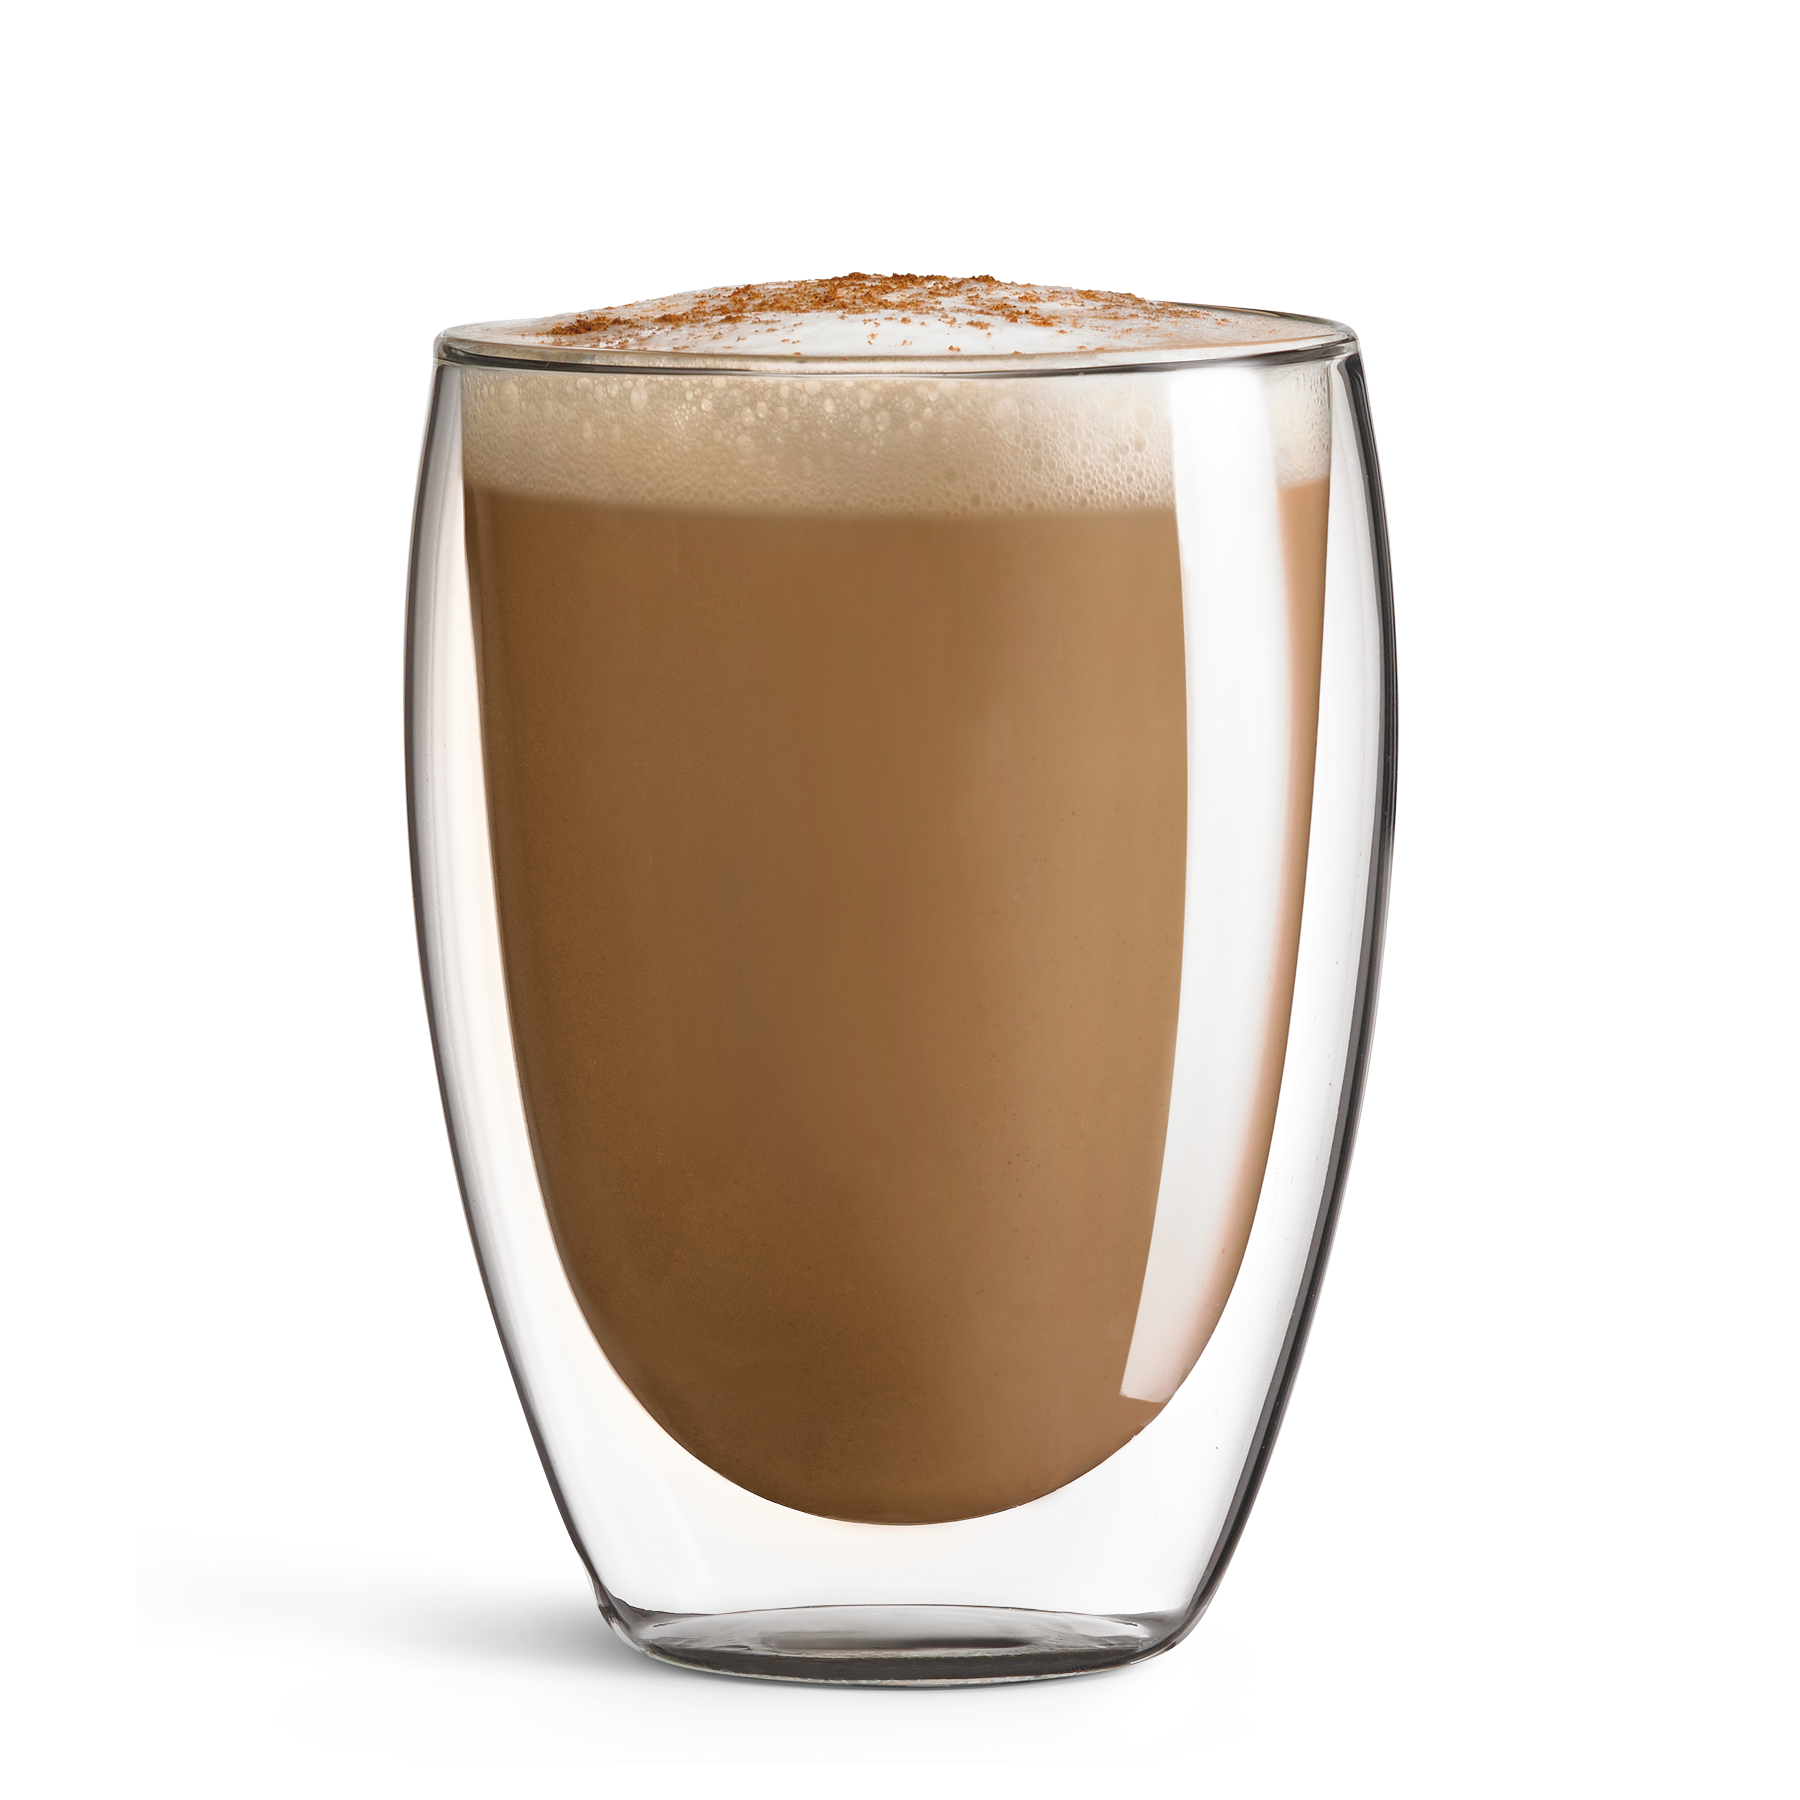 A freshly brewed 7-Eleven Latte coffee drink made with espresso and steamed milk.